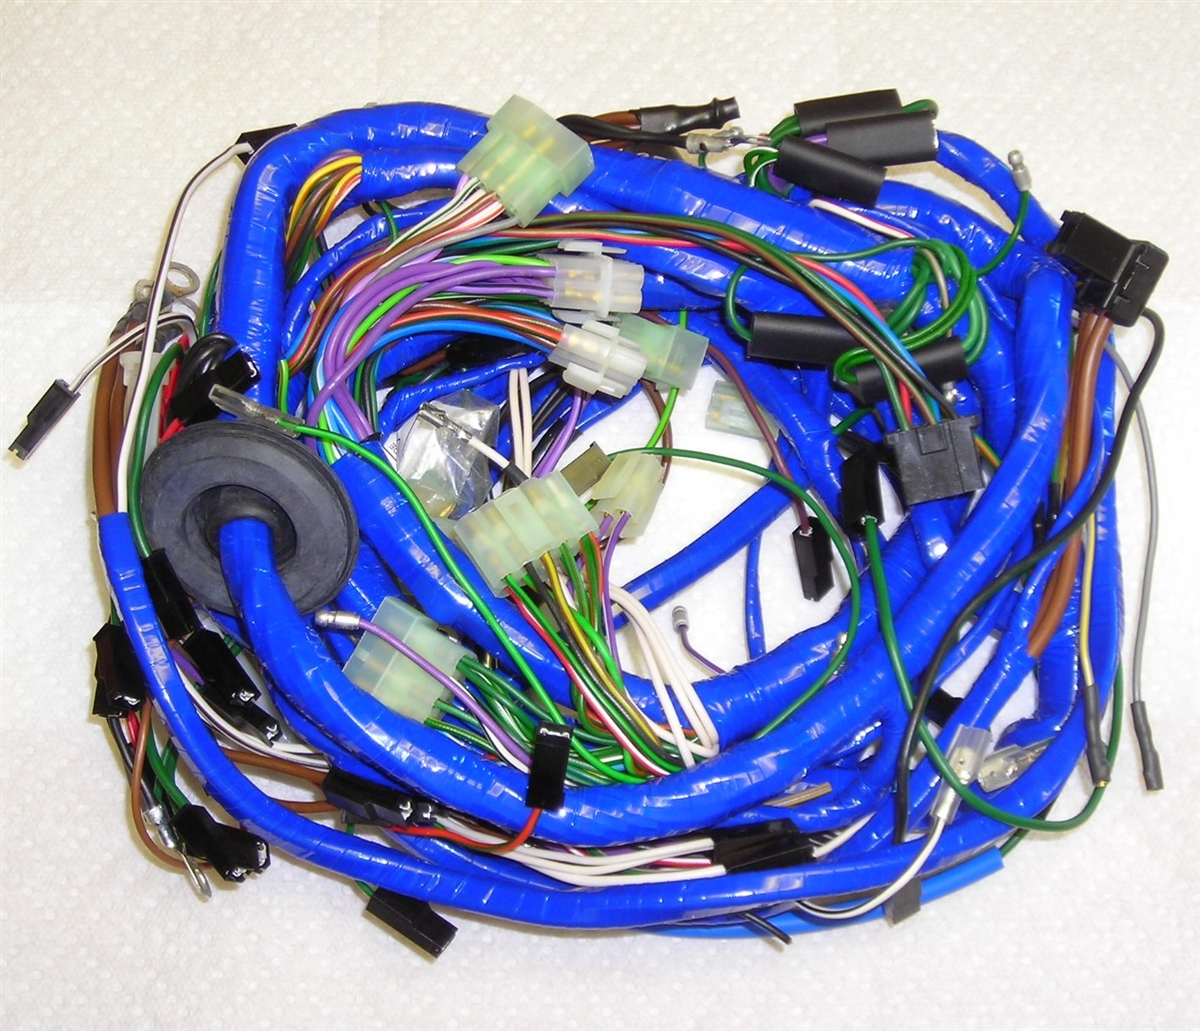 Mgb Wiring Harness Diagram Will Be A Thing 1978 Fan Relay 1980 Main 522 Rh Britishwiring Com Color Codes